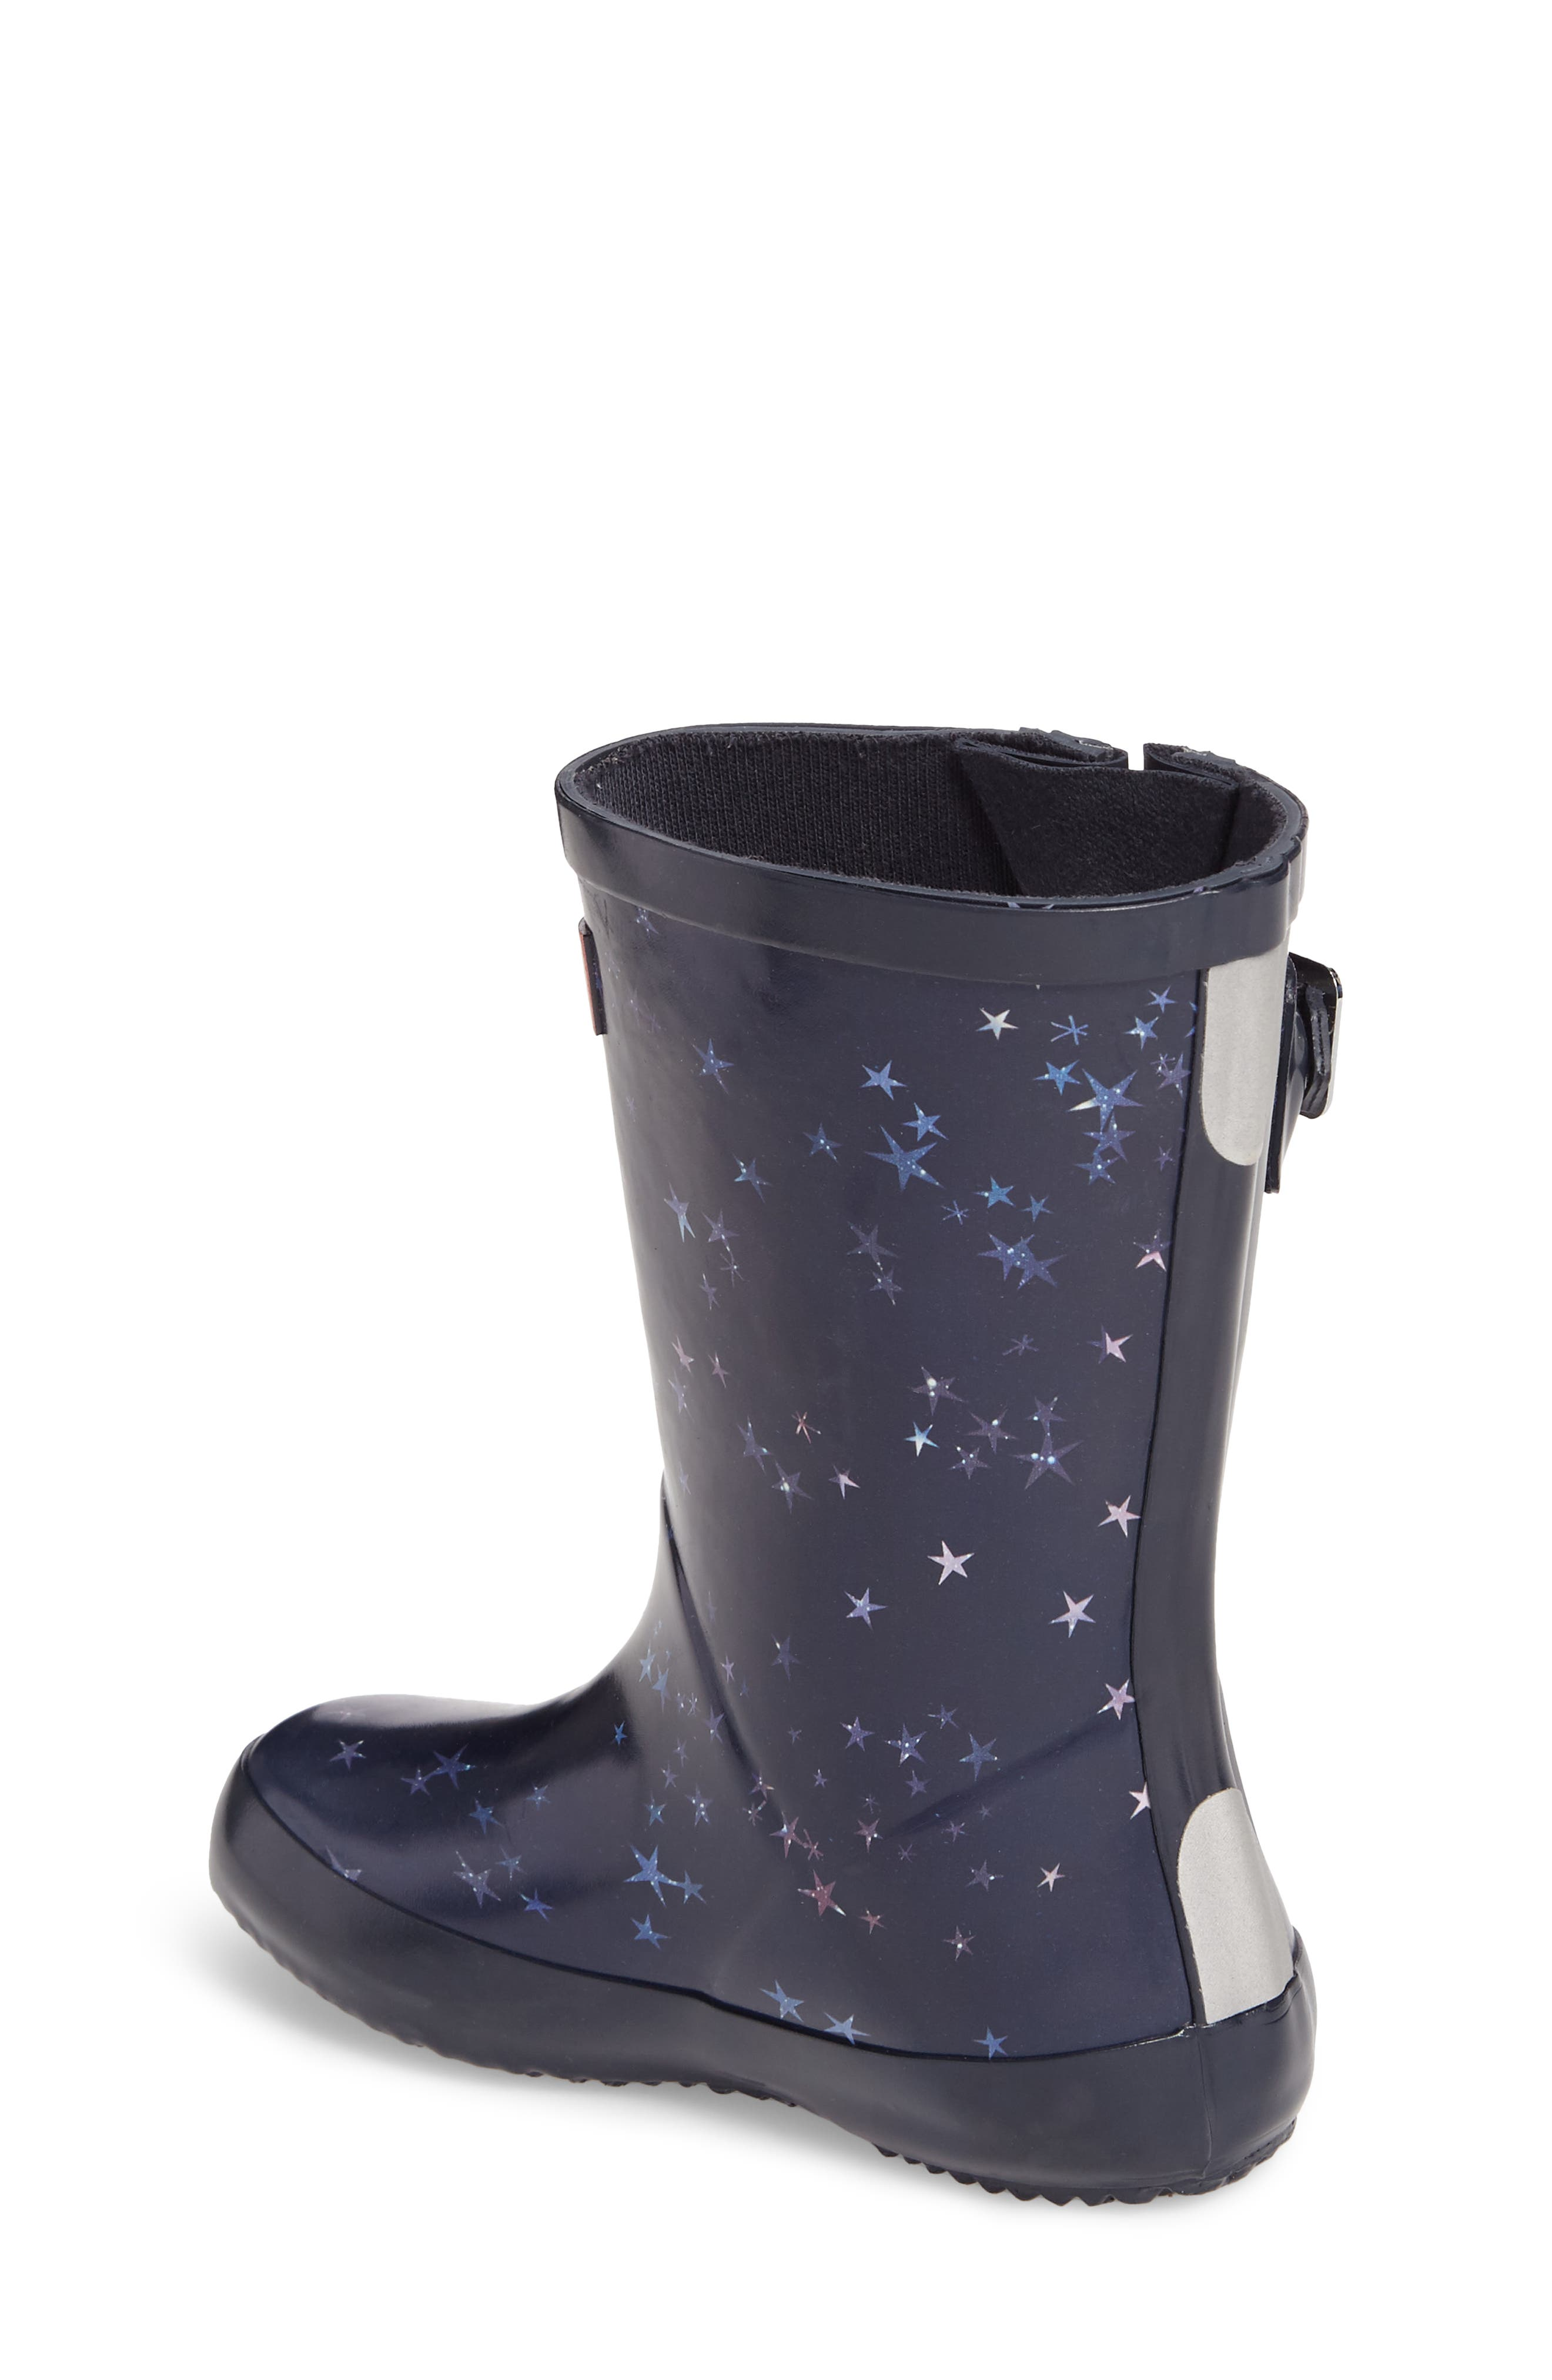 Flat Sole Constellation Waterproof Rain Boot,                             Alternate thumbnail 2, color,                             483